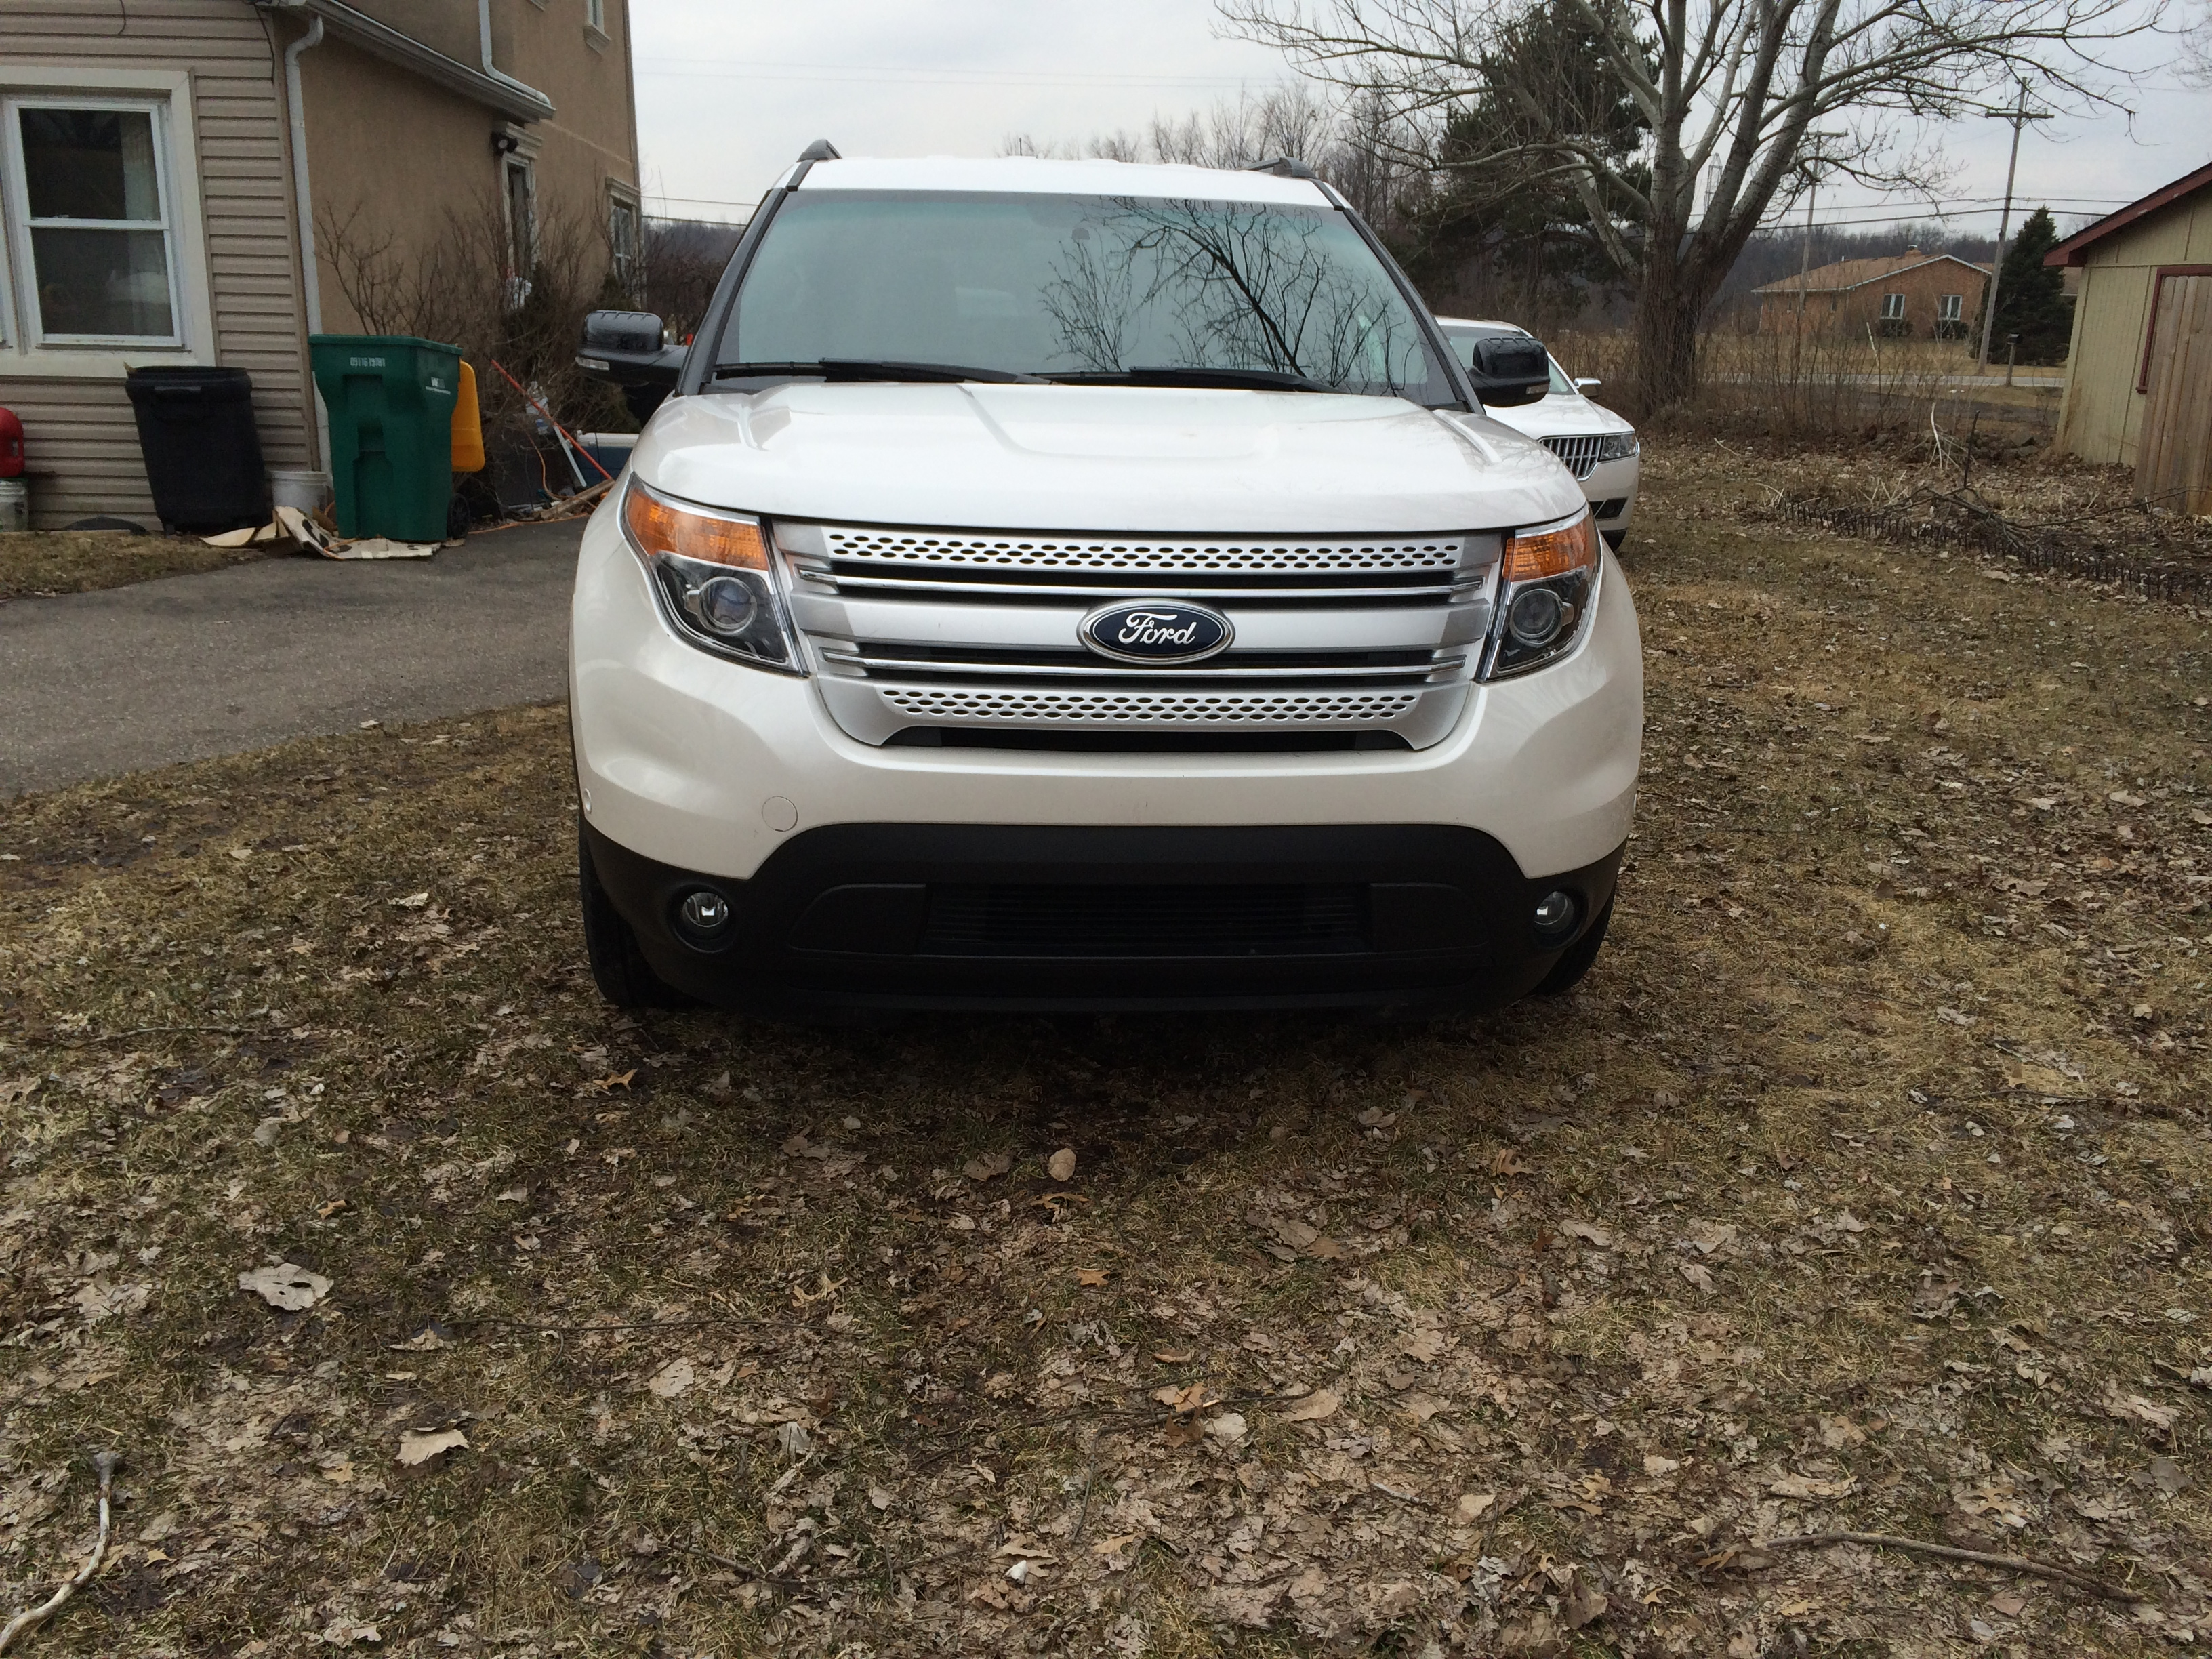 2013 ford explorer xlt awd buds auto used cars for sale in michigan buds auto used cars. Black Bedroom Furniture Sets. Home Design Ideas